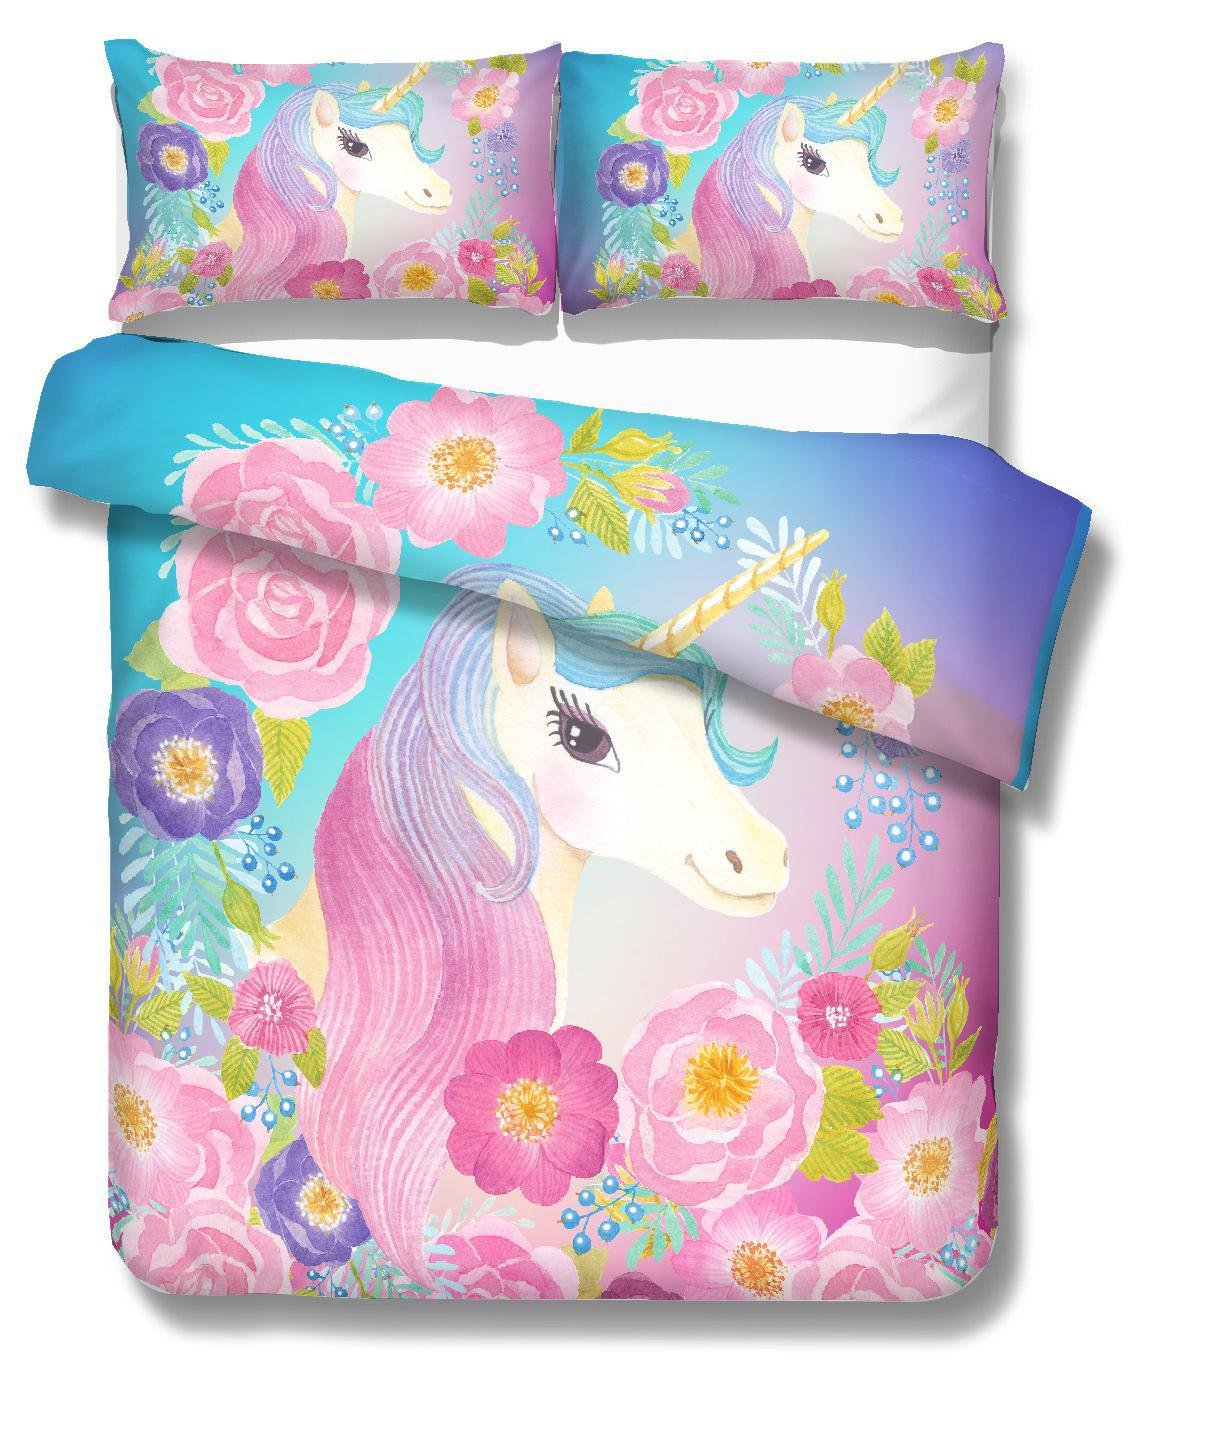 Suncloris,Cooper Girl Unicorn,Bedding Sheet Set .Included:1Duvet Cover,1Pillowcase(No Comforter Inside) (Twin) by Suncloris